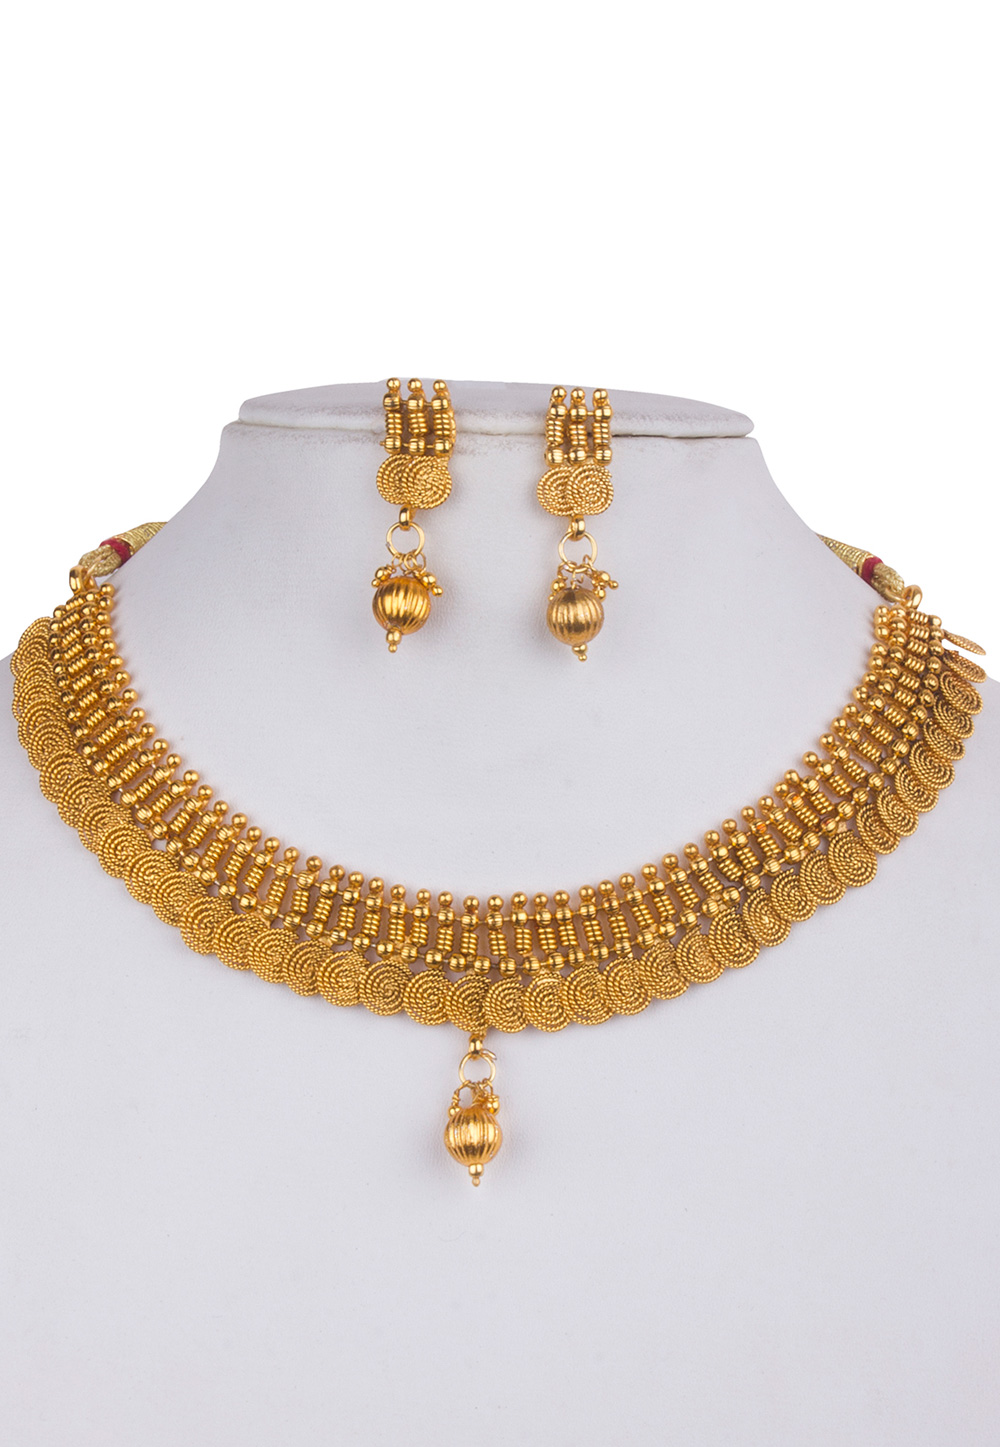 Golden Alloy Kundan Necklace With Earrings 156257